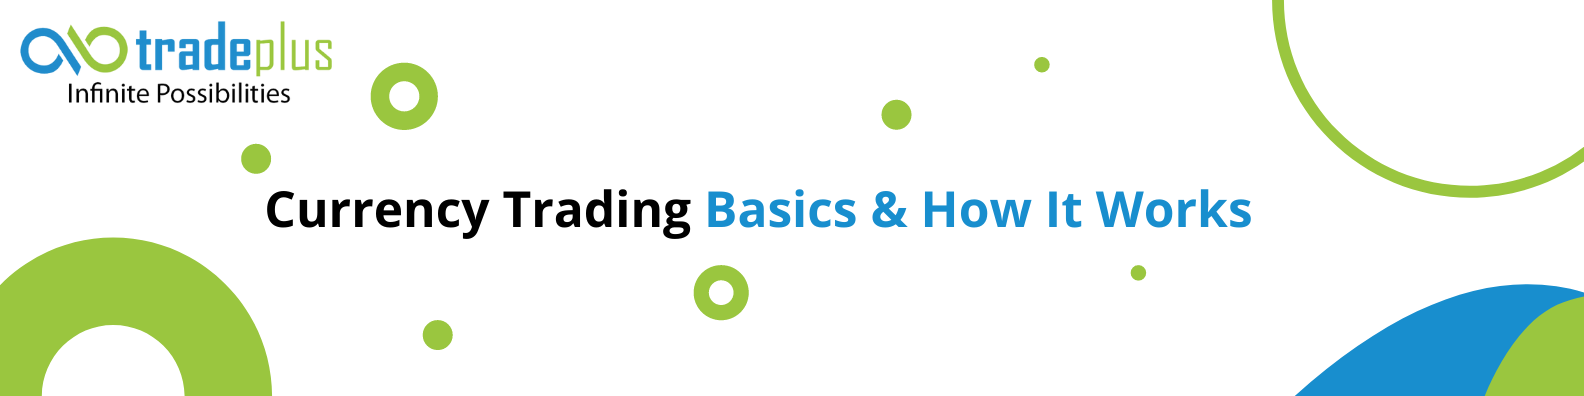 Currency trading basics how it works Currency Trading Basics & How It Works